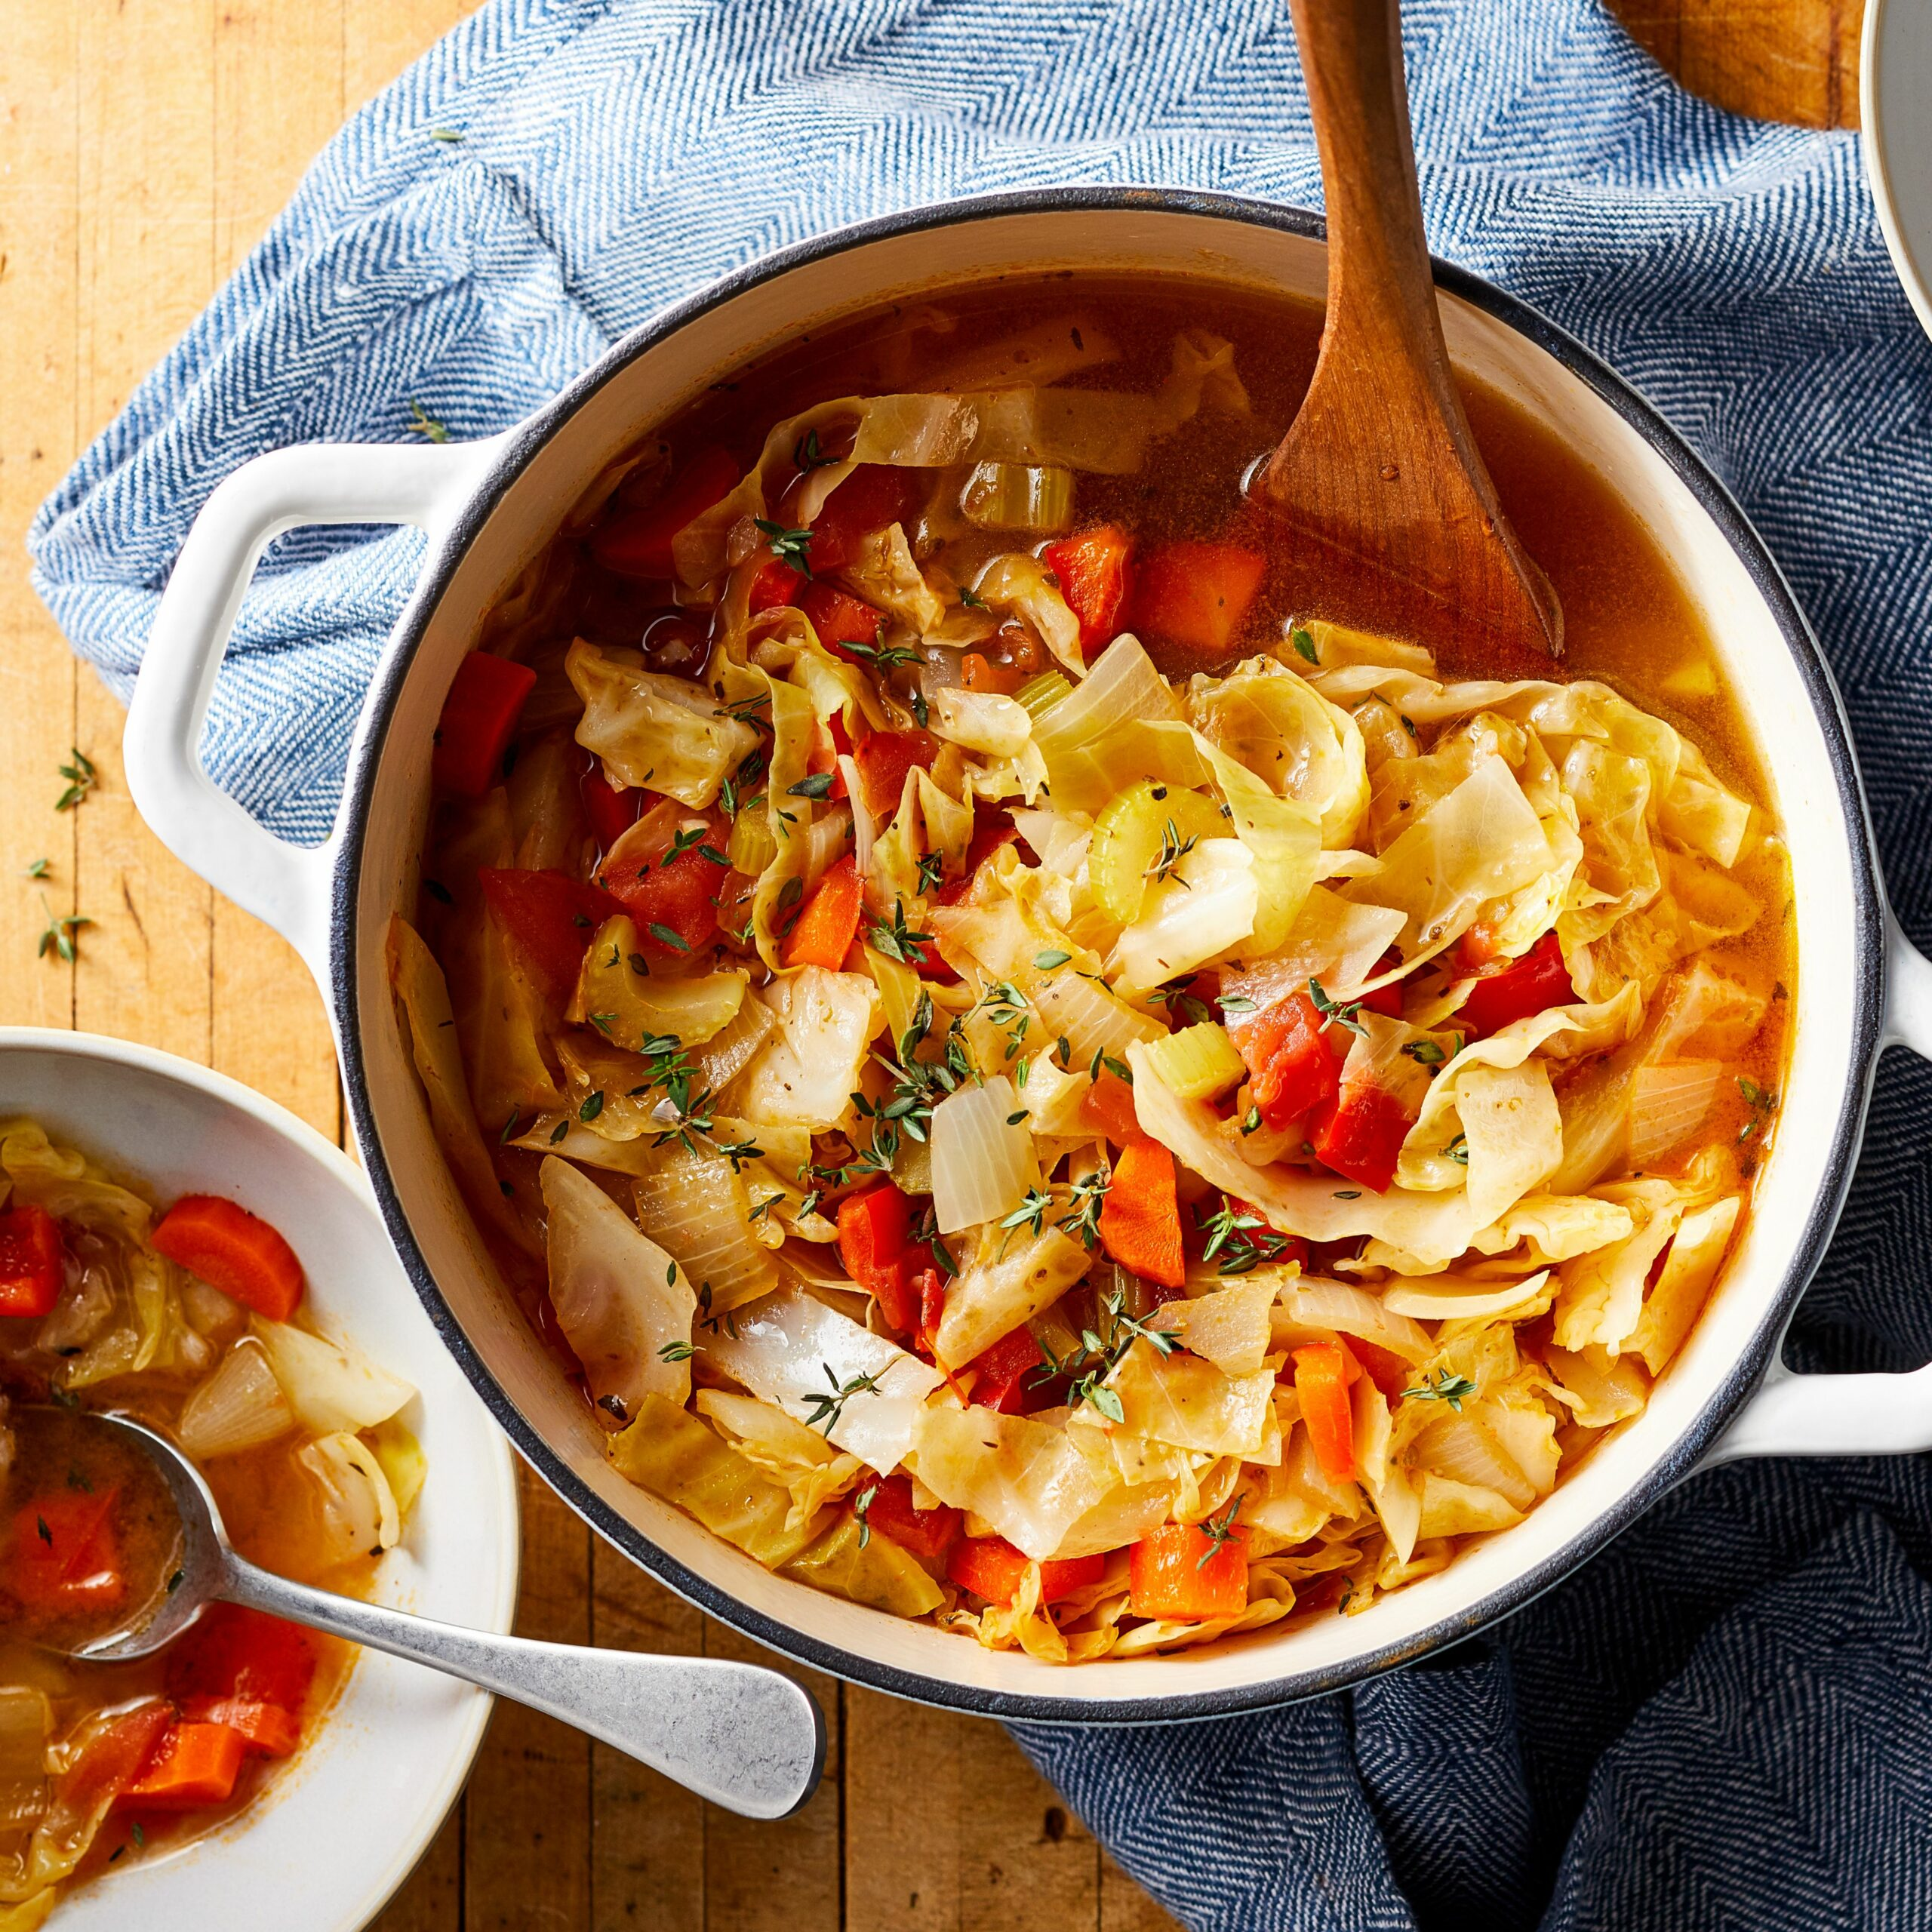 Cabbage Diet Soup - Cabbage Recipes Weight Loss Soup